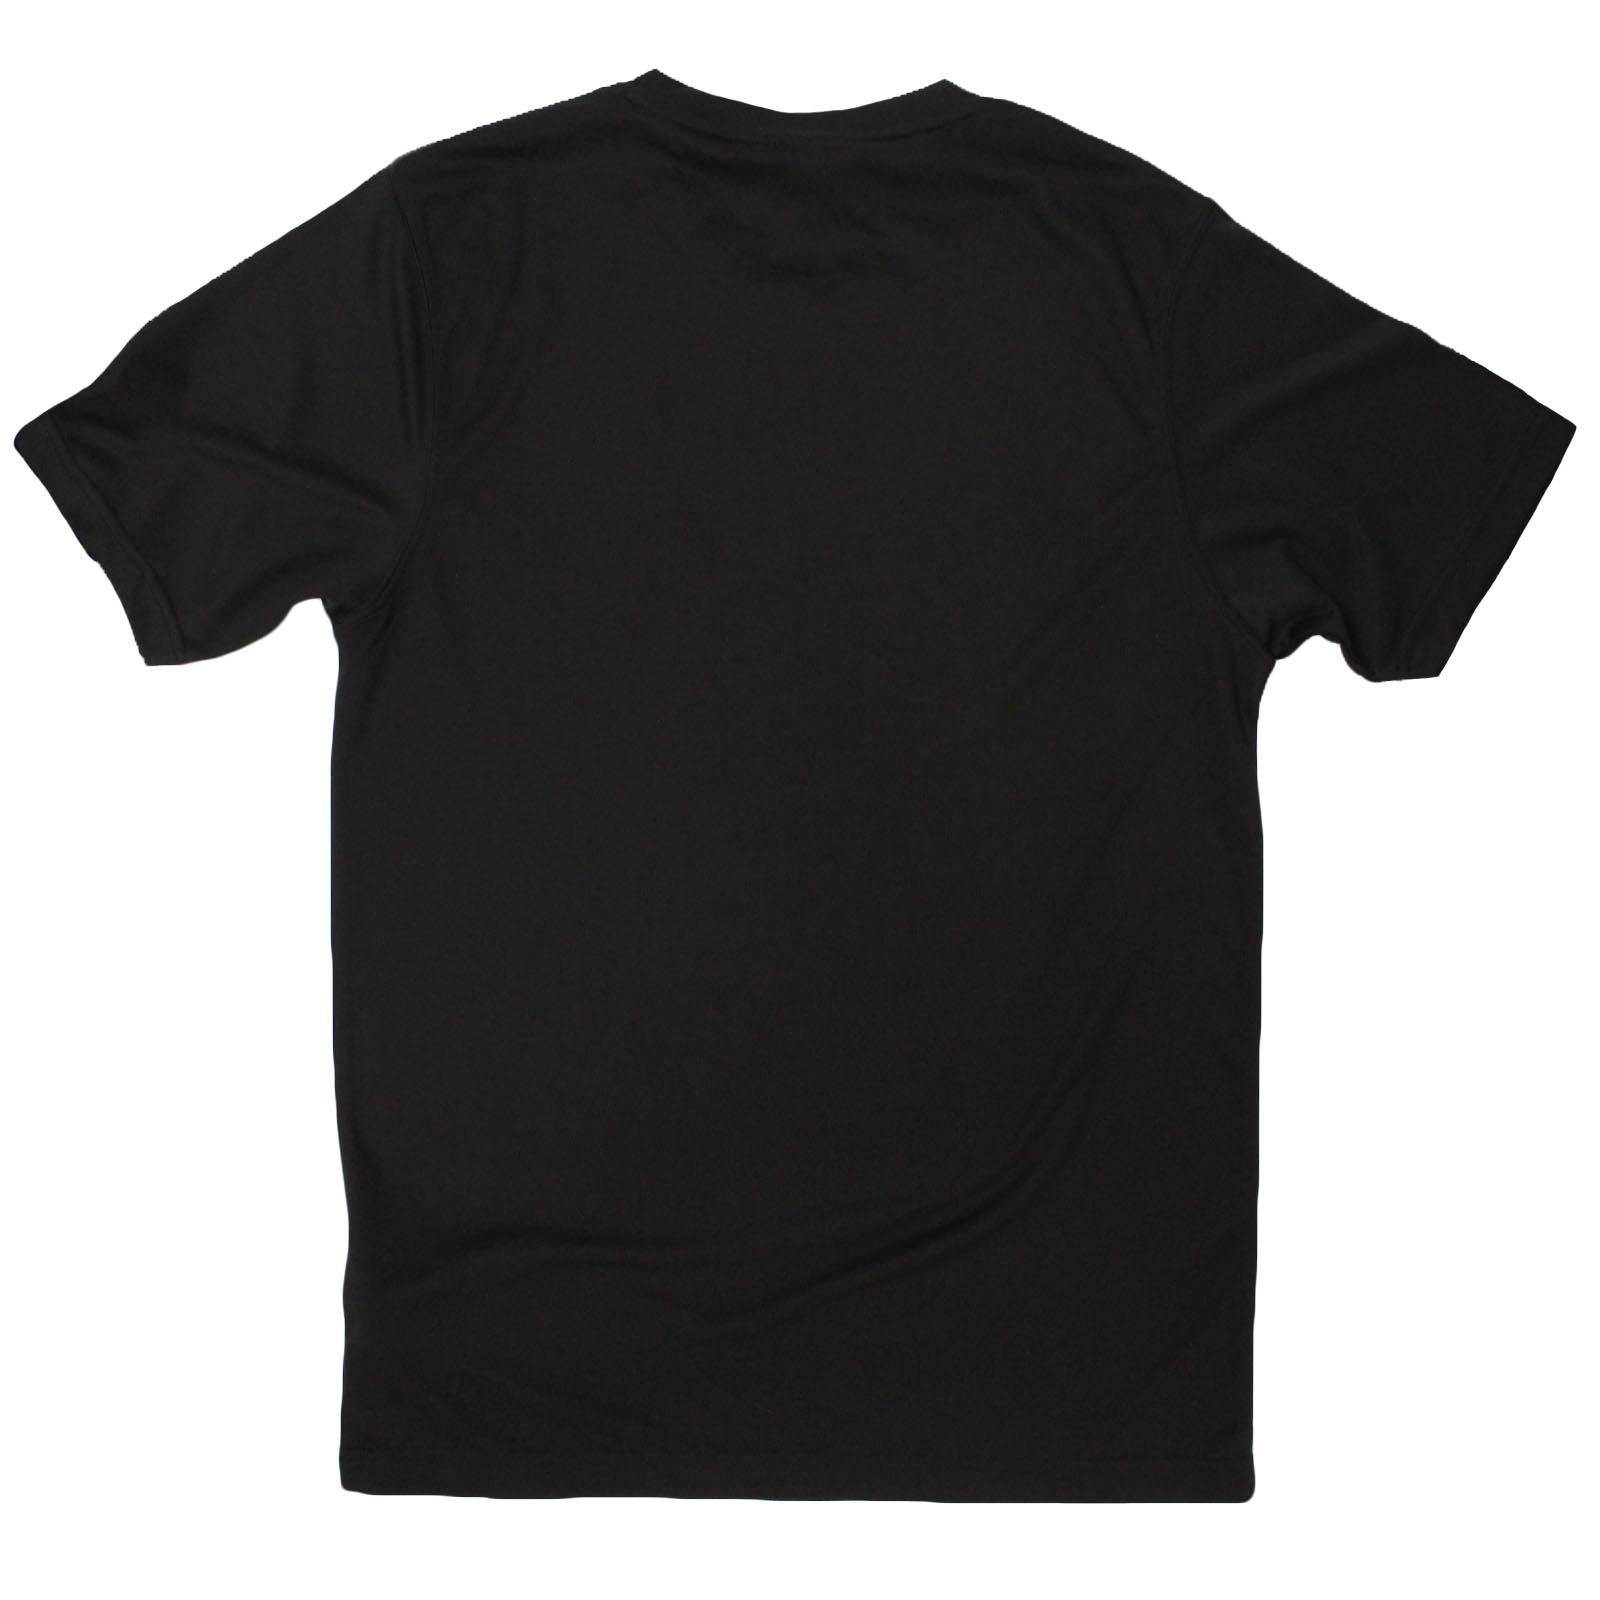 Adrenaline Addict Premium Dry Fit Breathable Sports T-SHIRT Rely On Skill